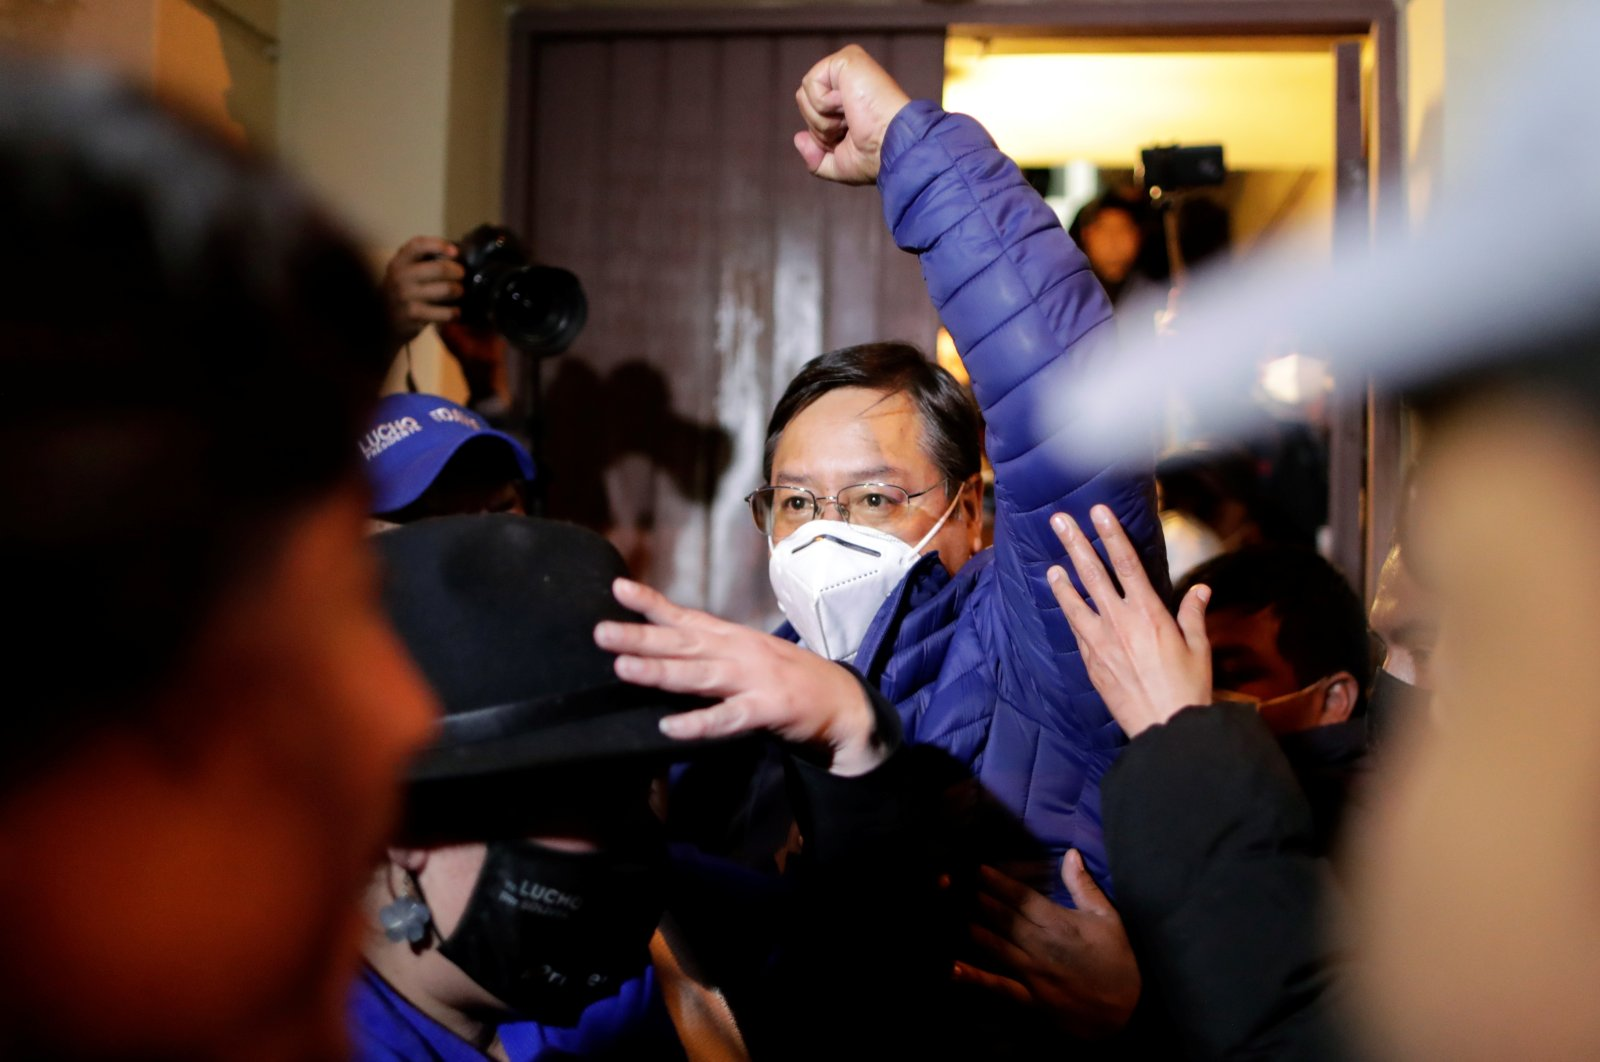 Luis Arce, presidential candidate of the Movement to Socialism party (MAS), raises his fist after an unofficial rapid count of the vote indicated he is set to win the country's presidential election without the need for a run-off, La Paz, Oct. 19, 2020. (REUTERS Photo)